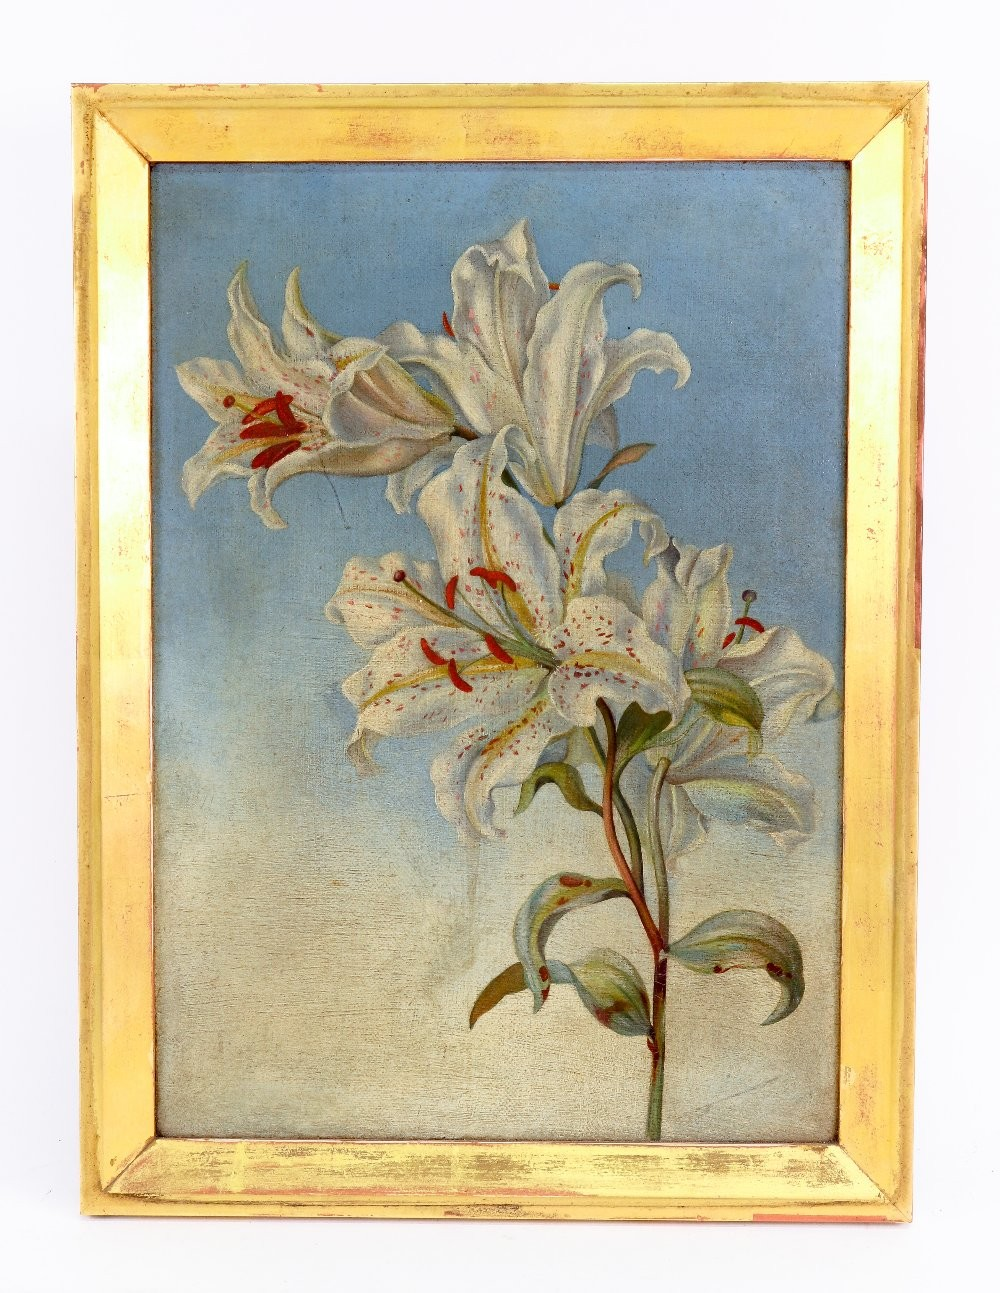 Alice Mary Mansford (British, 19th Century), Still life of lilies, inscribed 'Alice Mary Mansford - Image 2 of 2